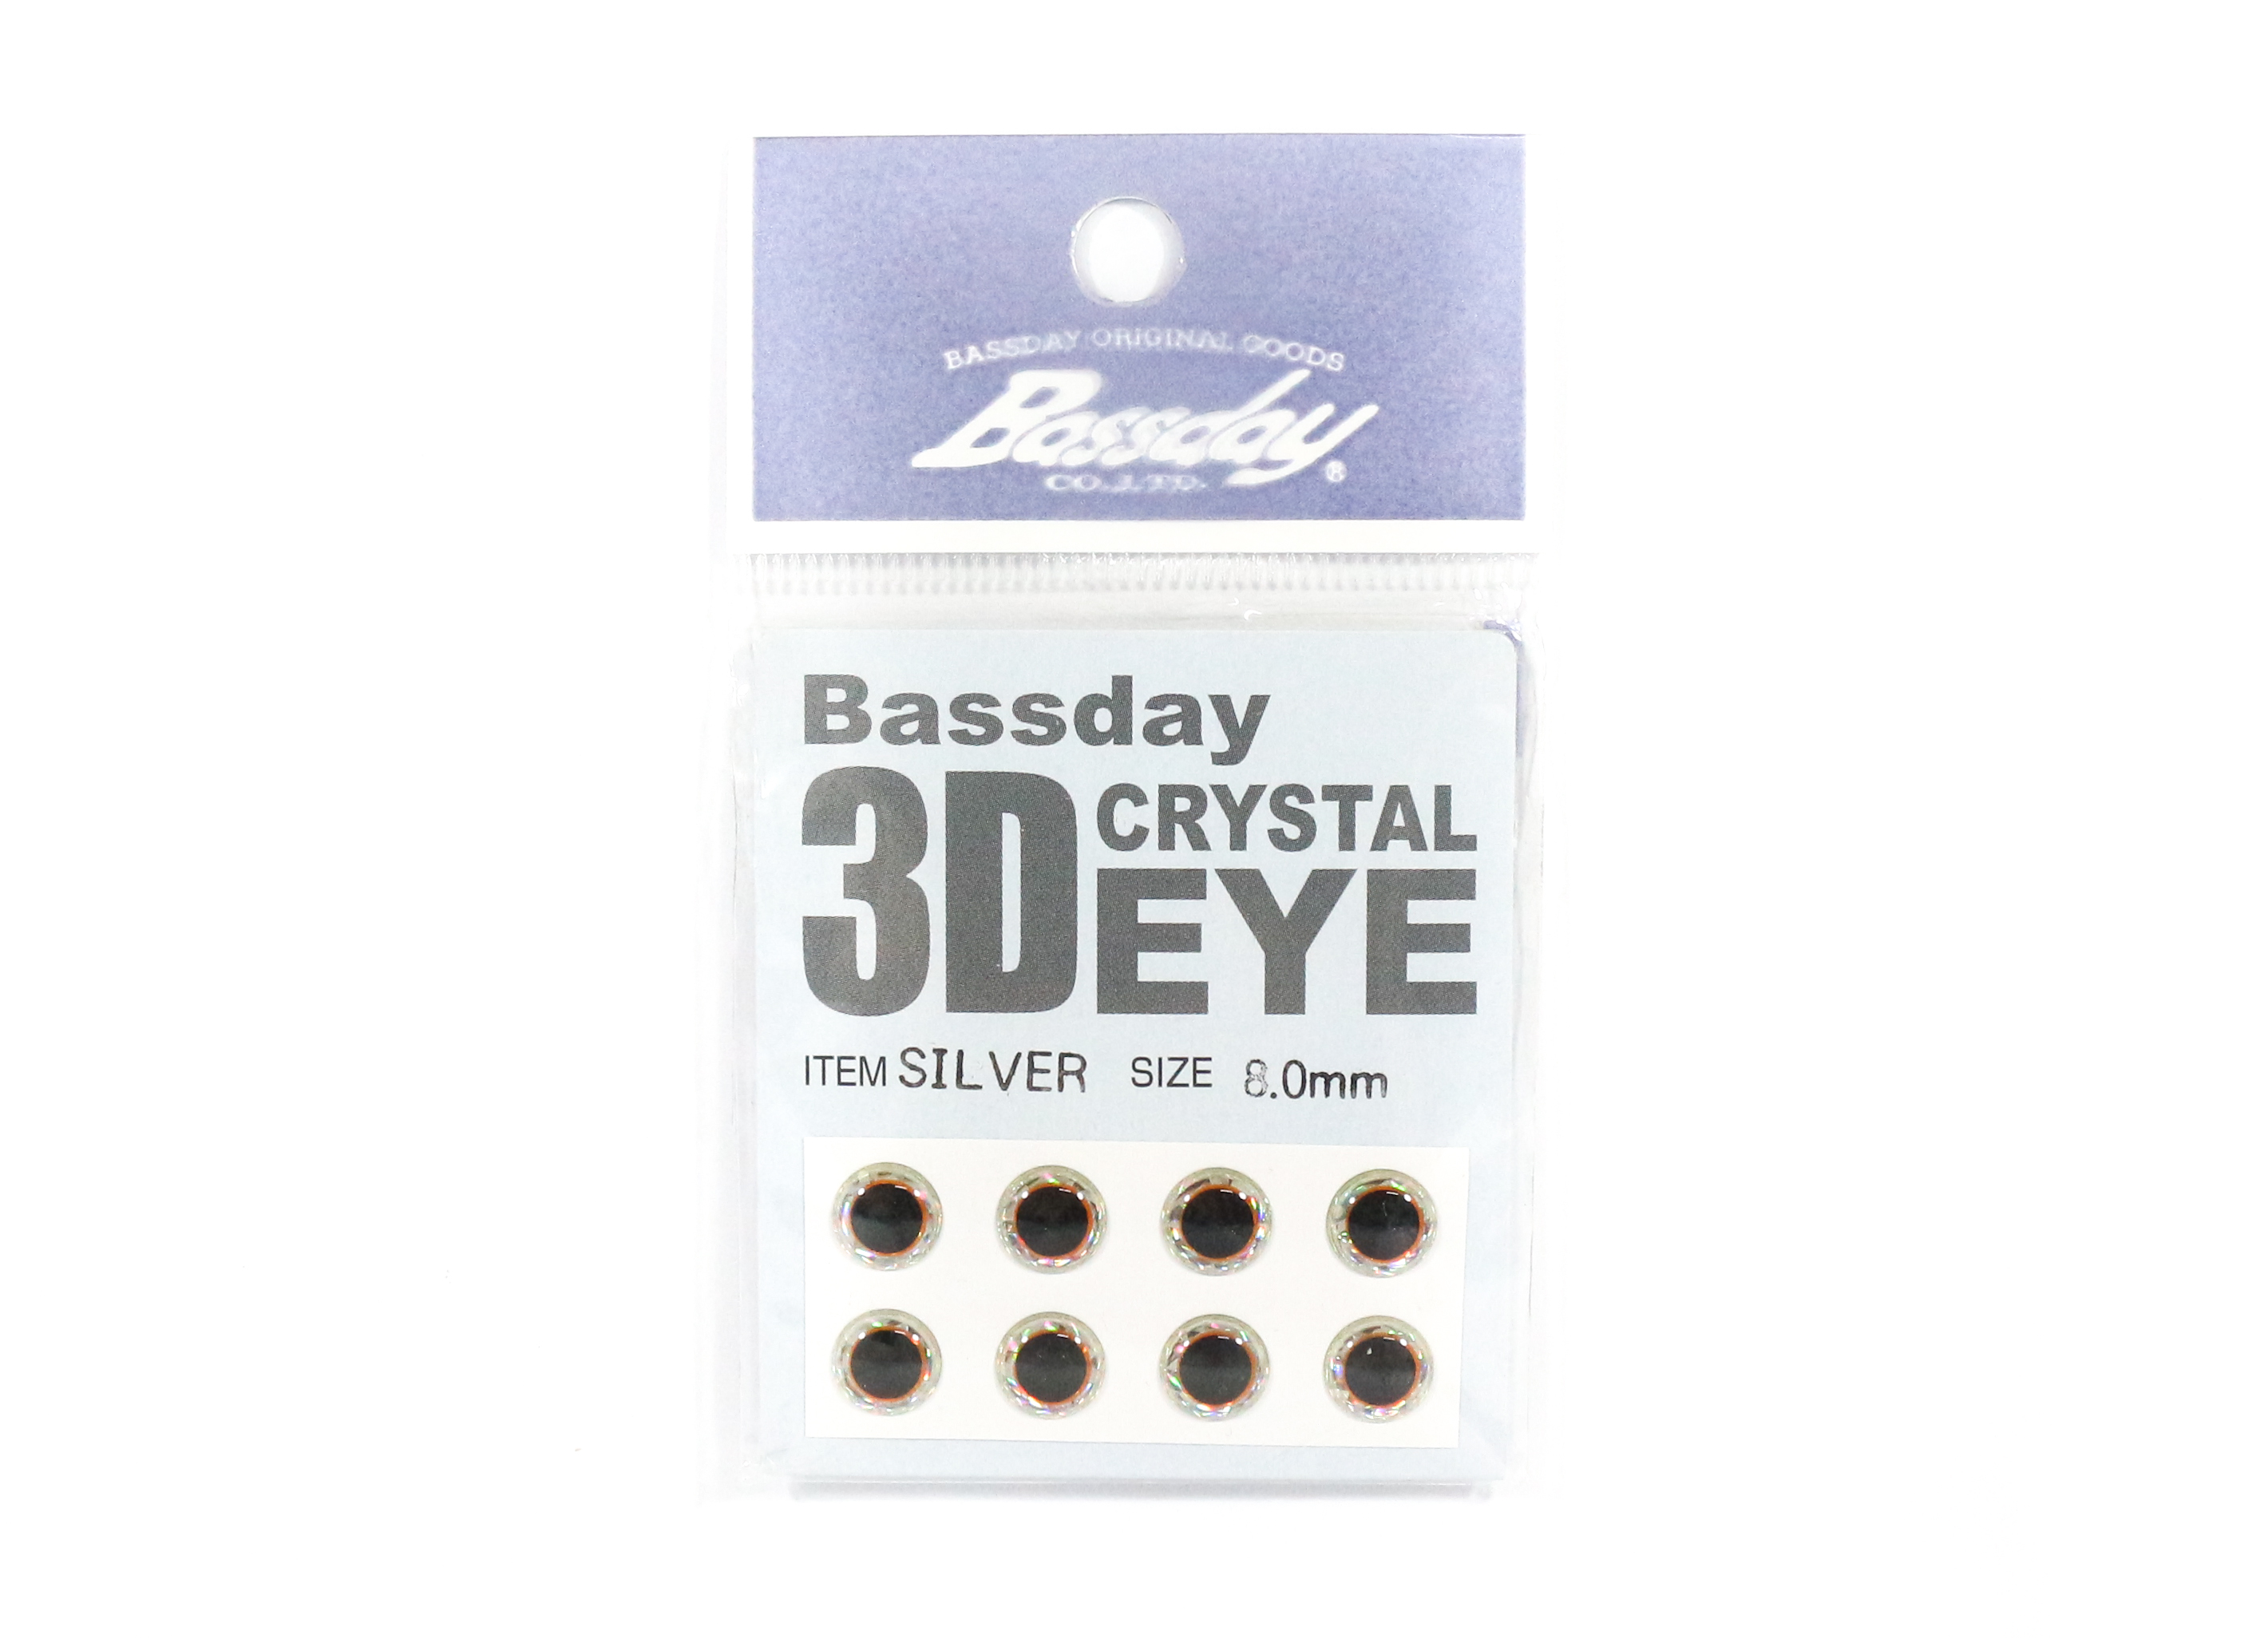 Bassday Live Eye Accessory Diameter 8mm Silver (8177)